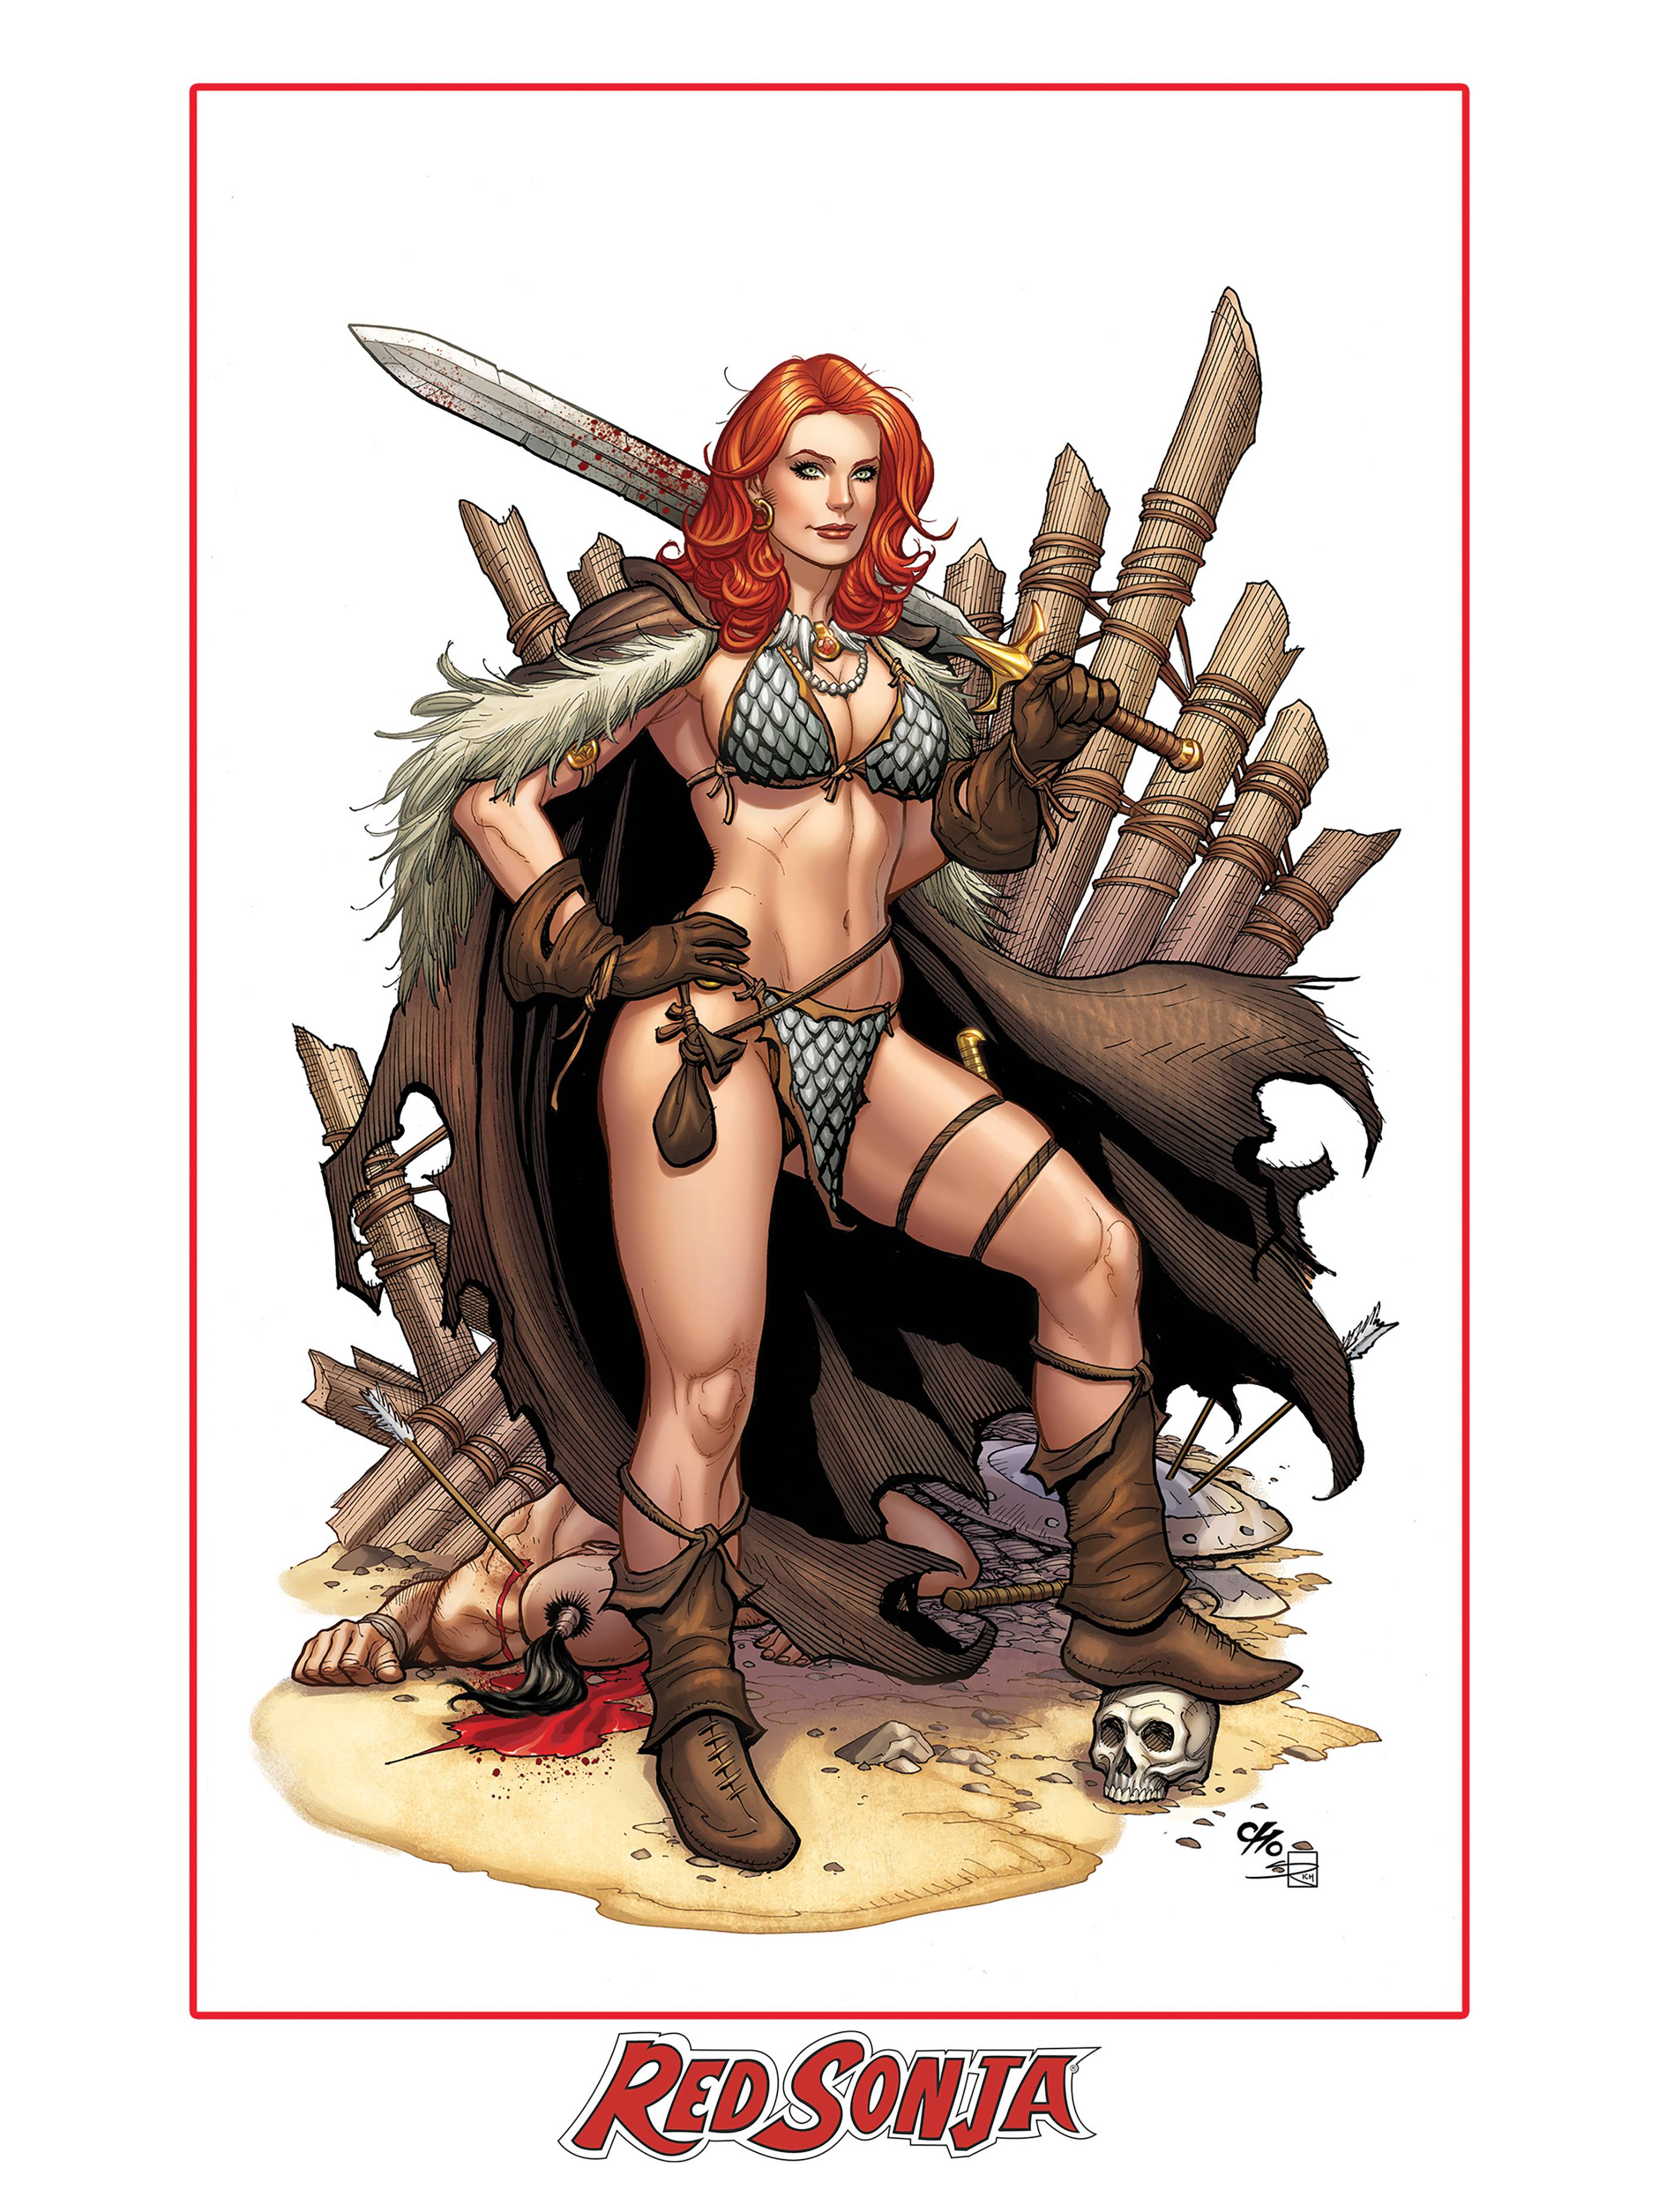 RED SONJA #13 FRANK CHO LTD ED LITHO